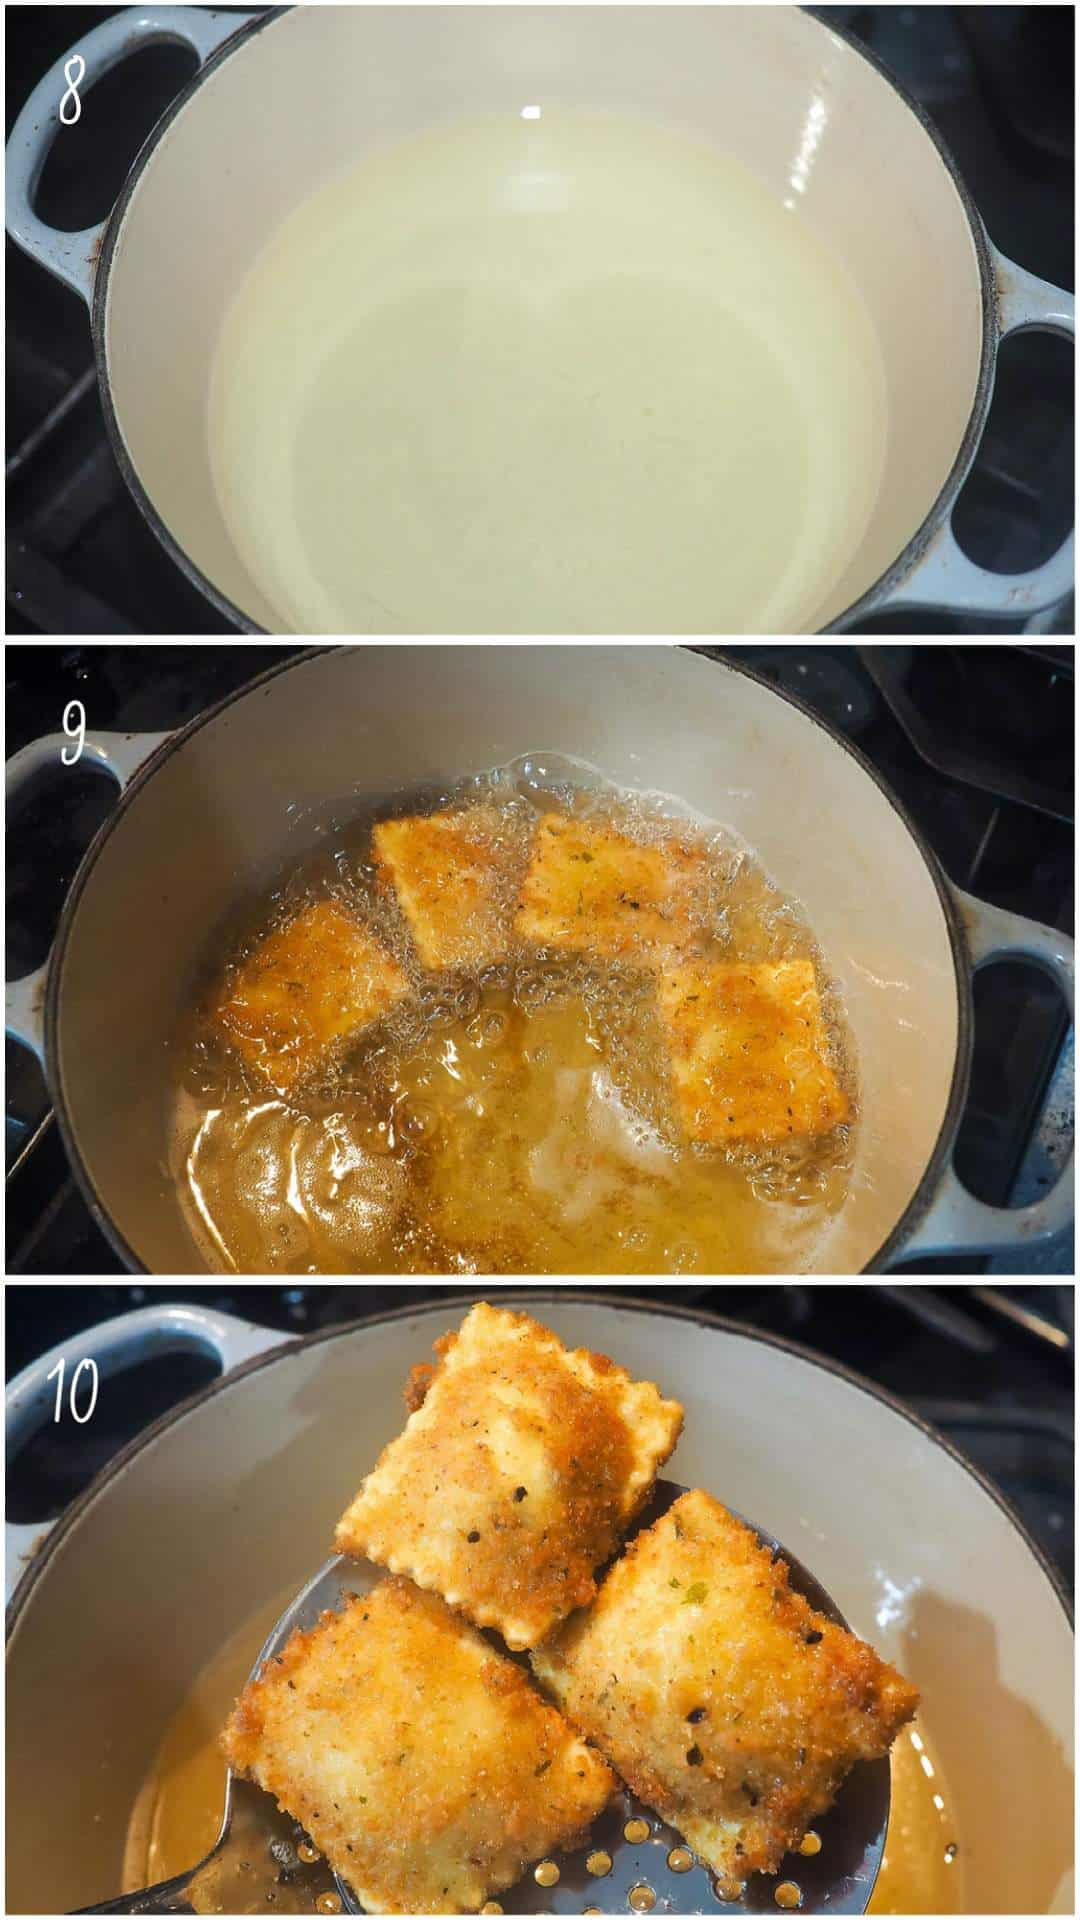 A collage of images showing how to fry ravioli, steps 8 - 10.